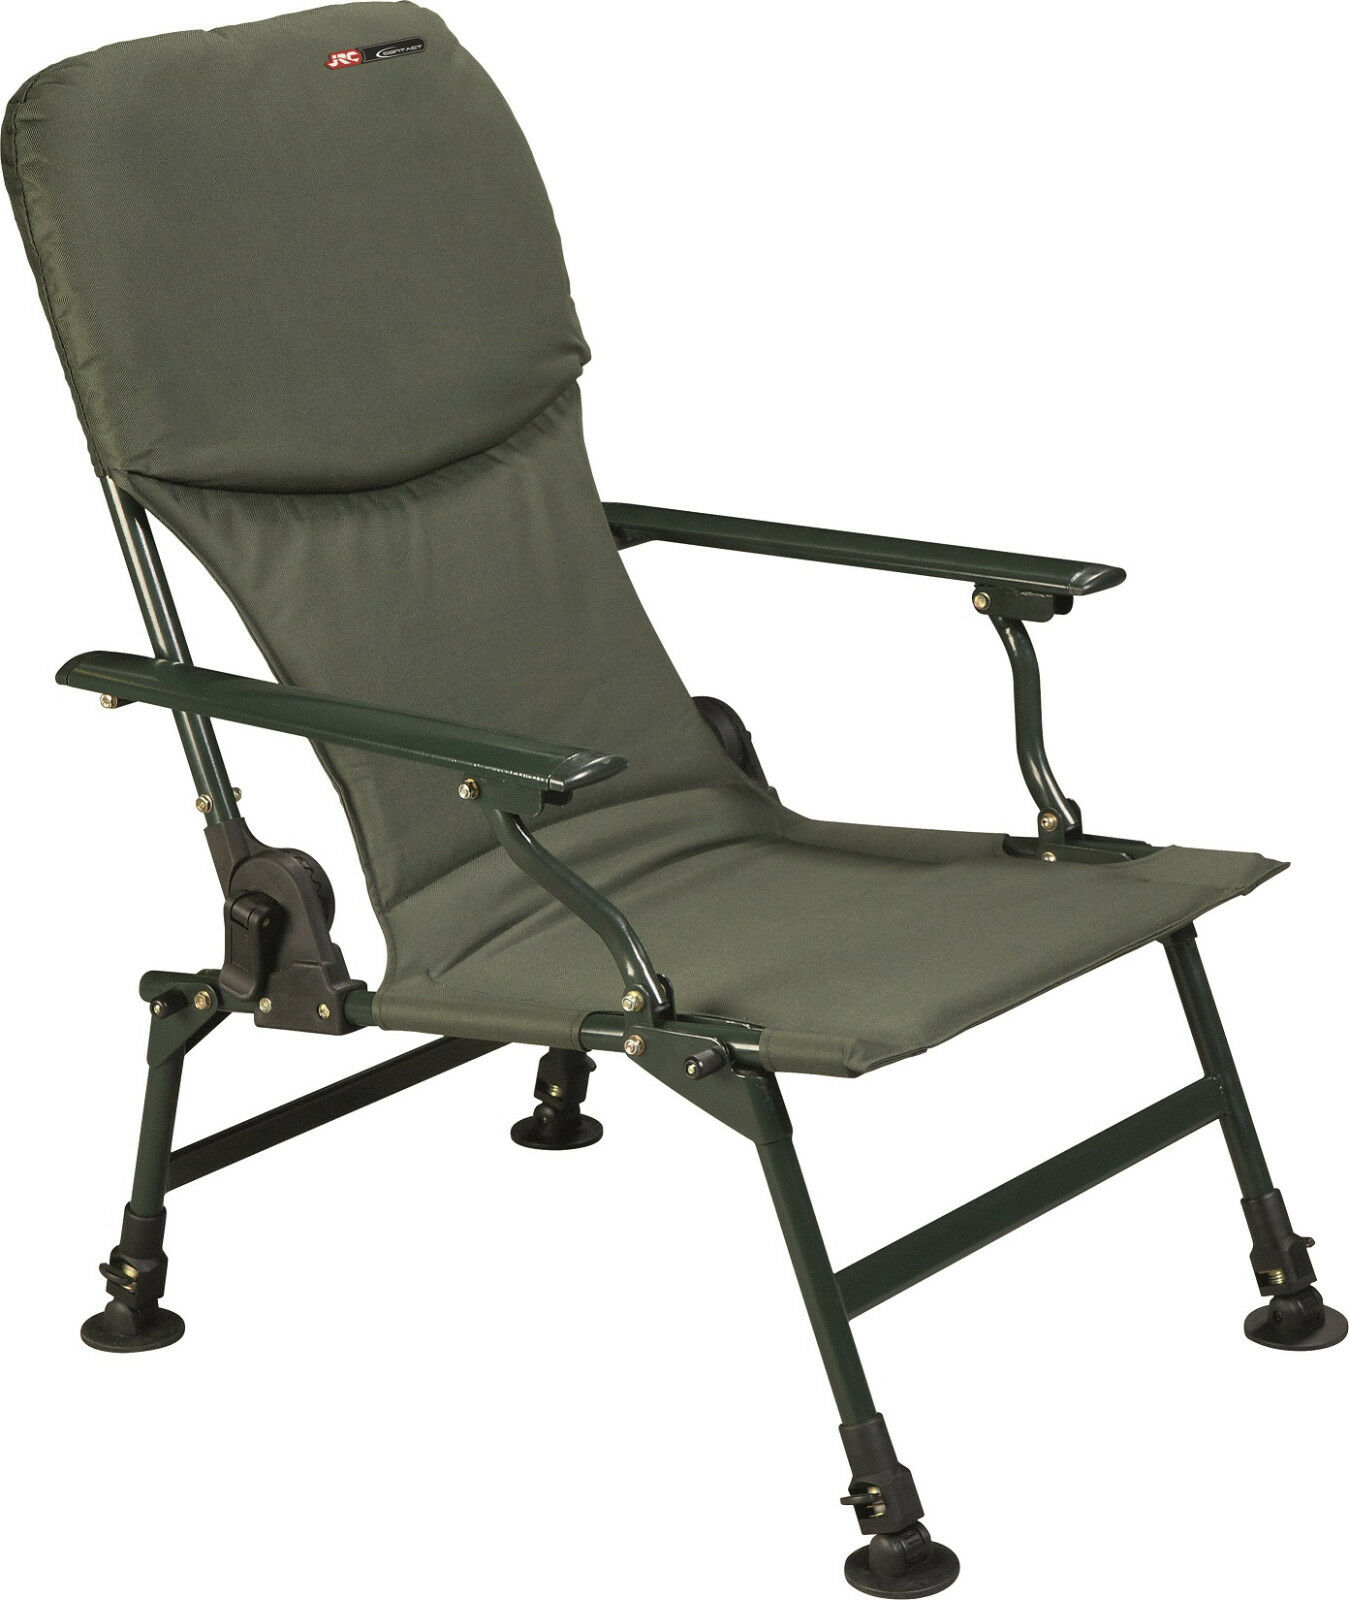 JRC contact recliner Chair silla karpfenstuhl angel silla  Cochep Chair Cochepchair  perfecto